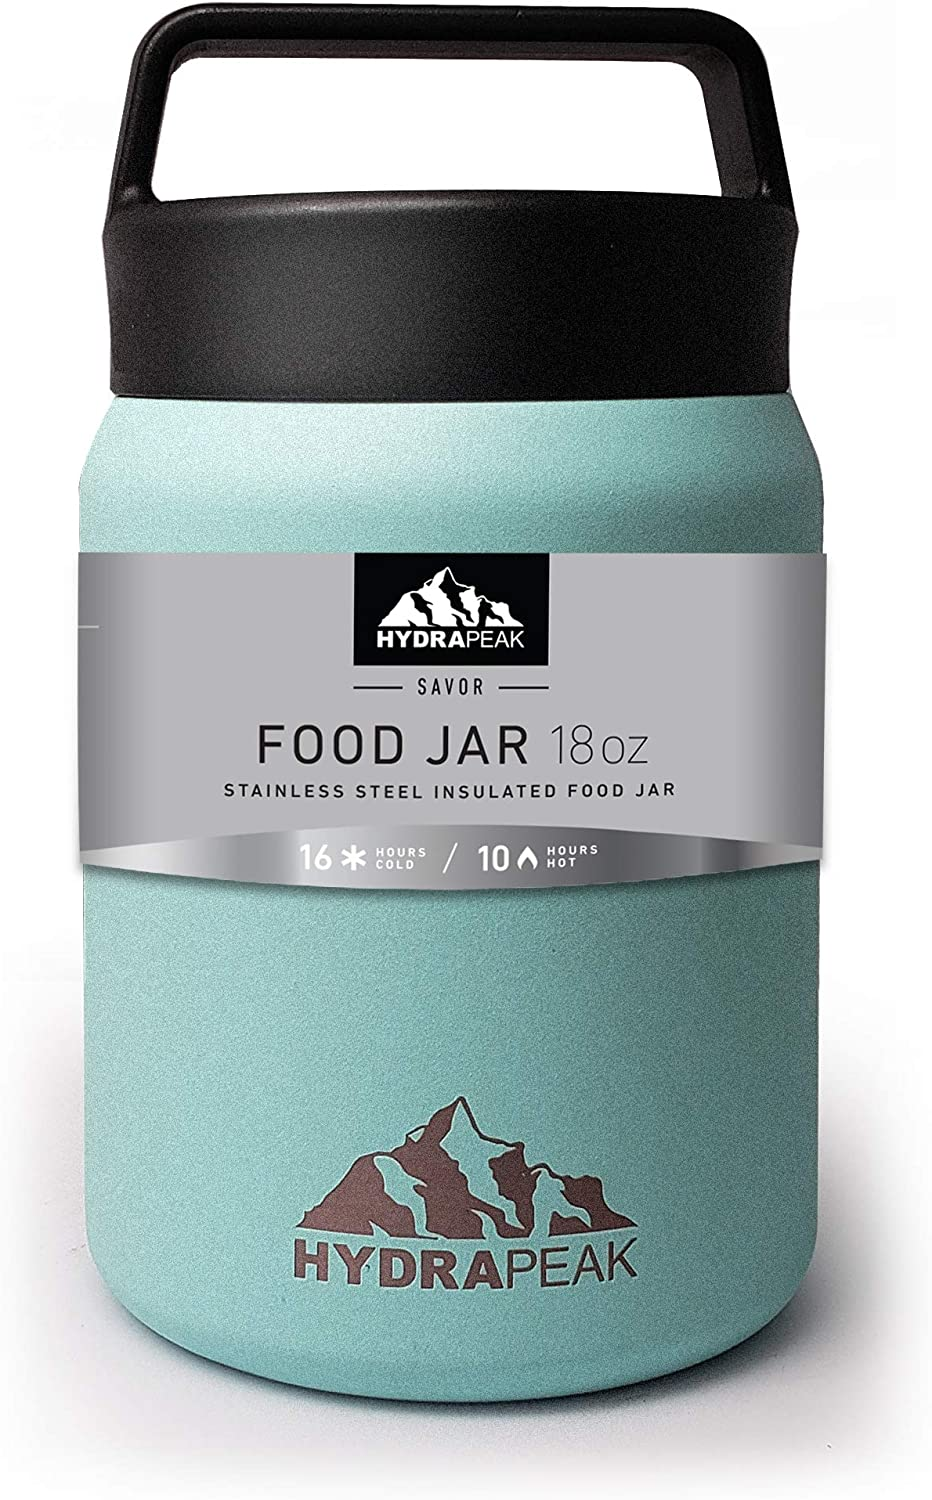 Hydrapeak 18oz Soup Thermos Food Jar | Stainless Steel Double-wall Vacuum Insulated |Travel Food Flask for Kids, Adults, Men, and Women (Aqua, 18oz)